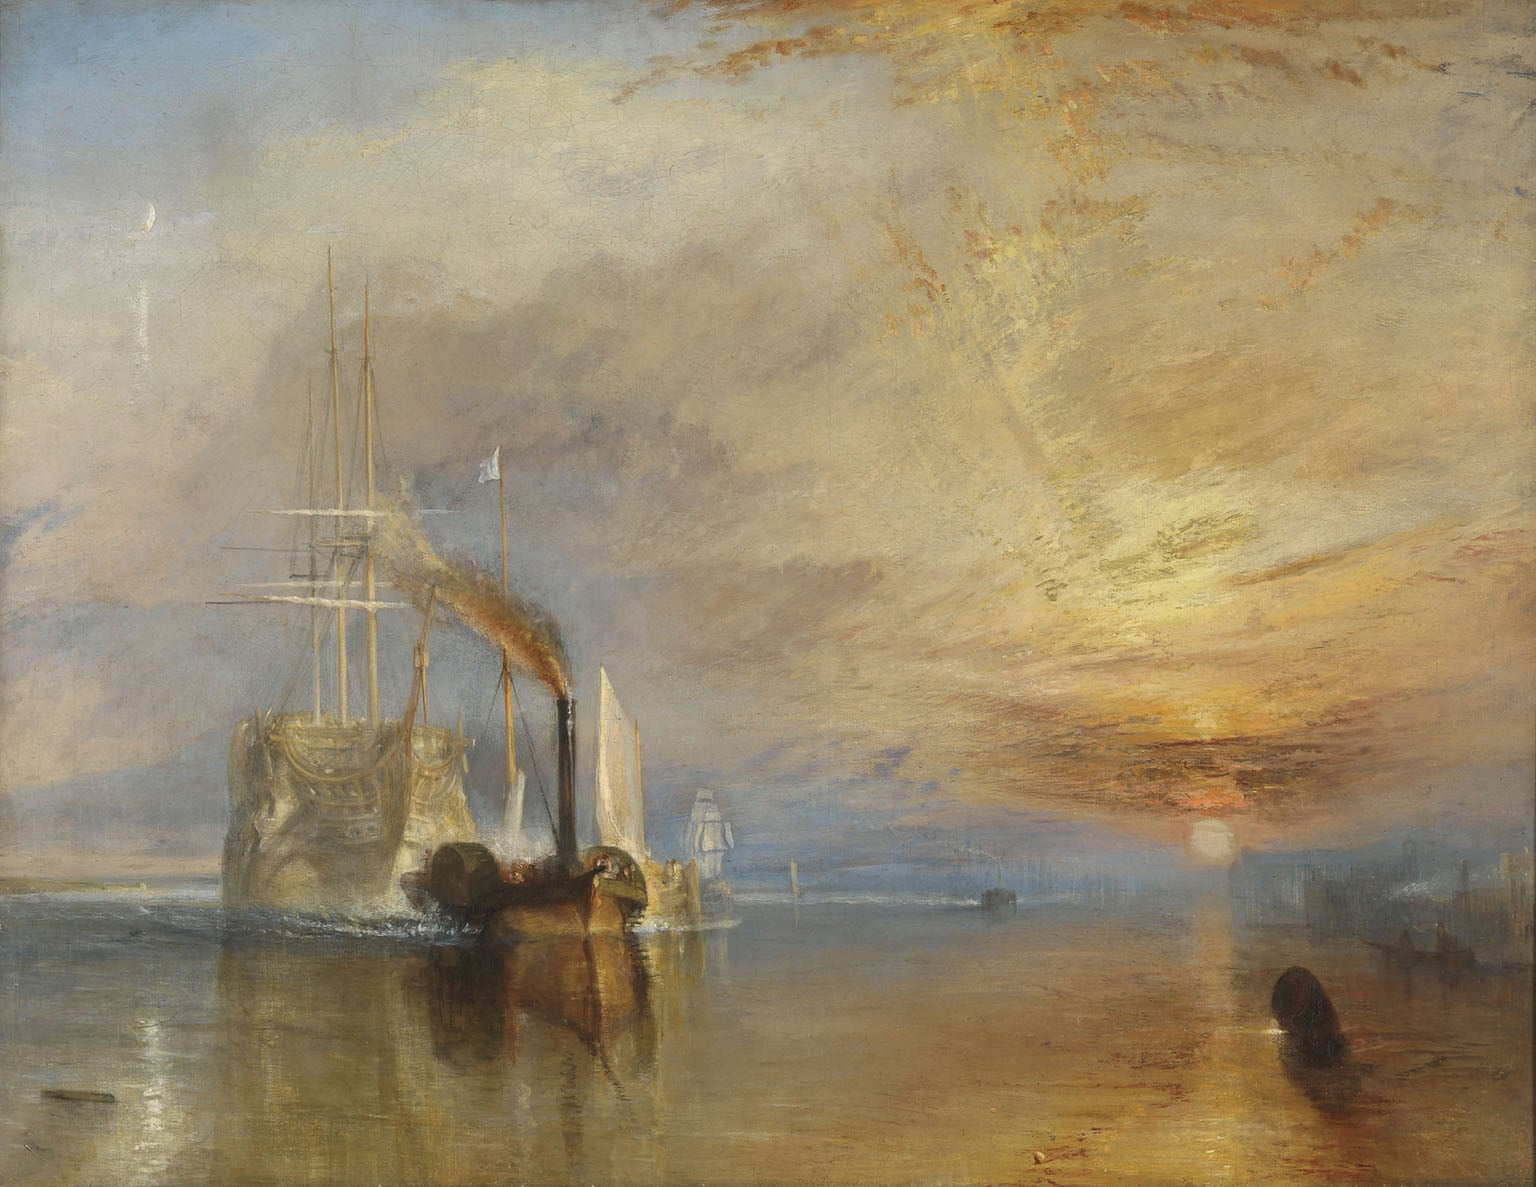 6. JMW Turner, The Fighting Temeraire, 1839 - National Gallery, London (on display)